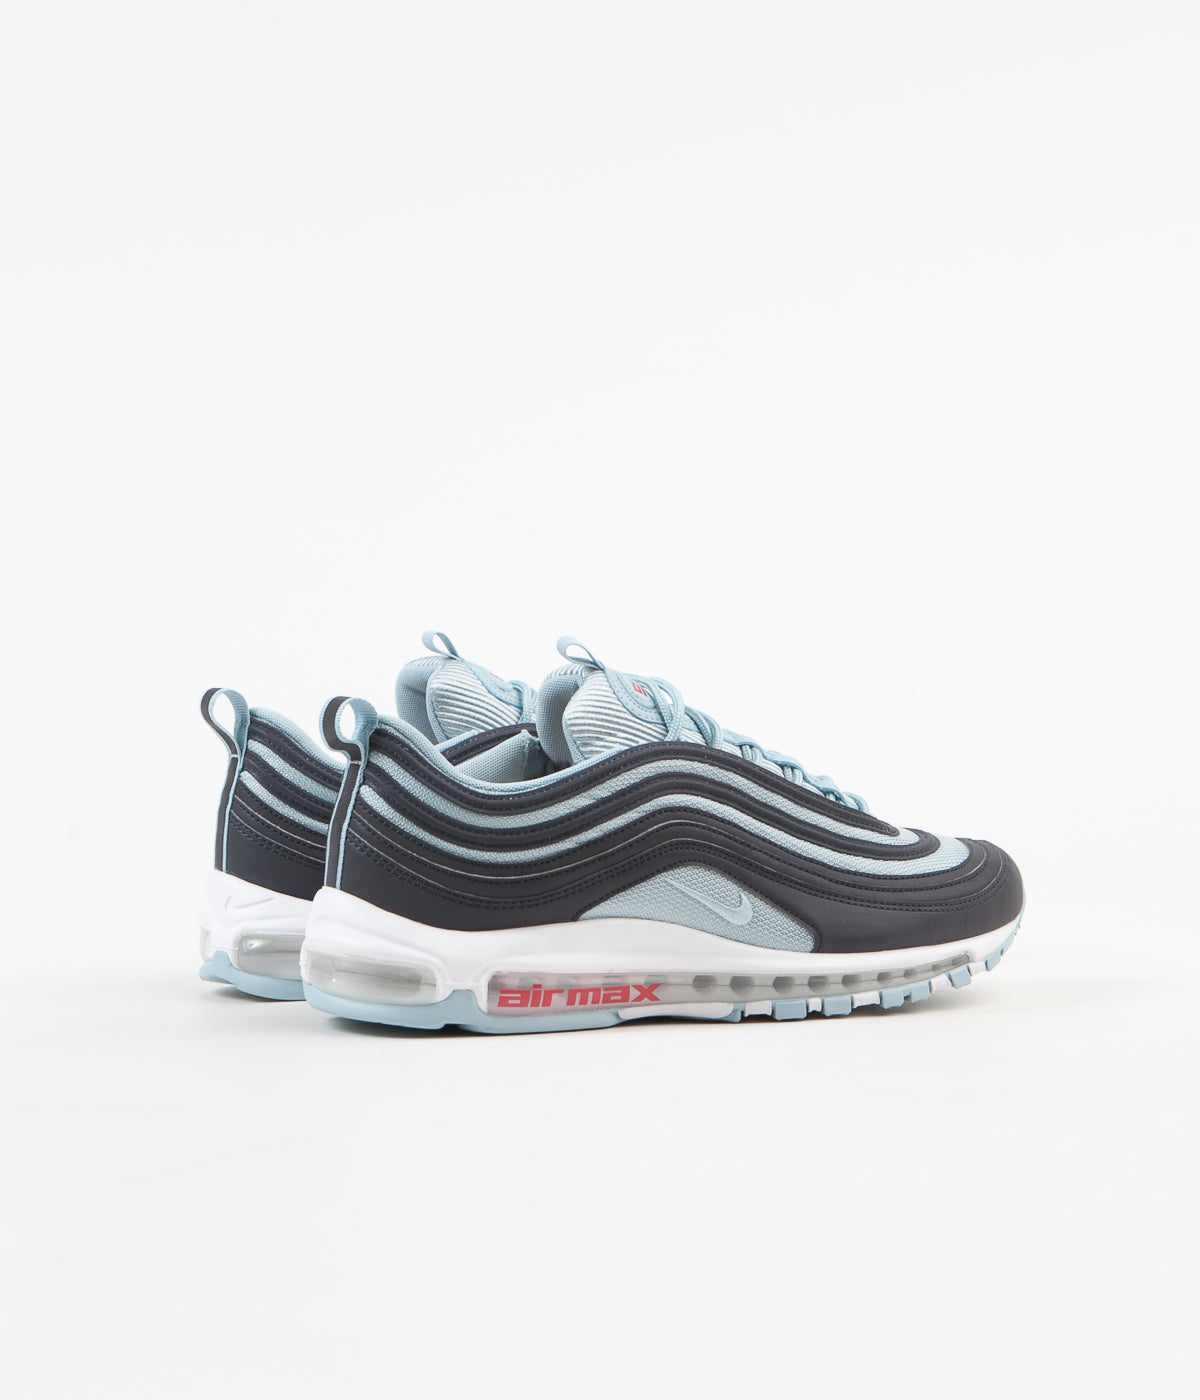 new products 078a9 9a694 ... Nike Air Max 97 Premium Shoes - Dark Obsidian   Ocean Bliss -  University Red ...